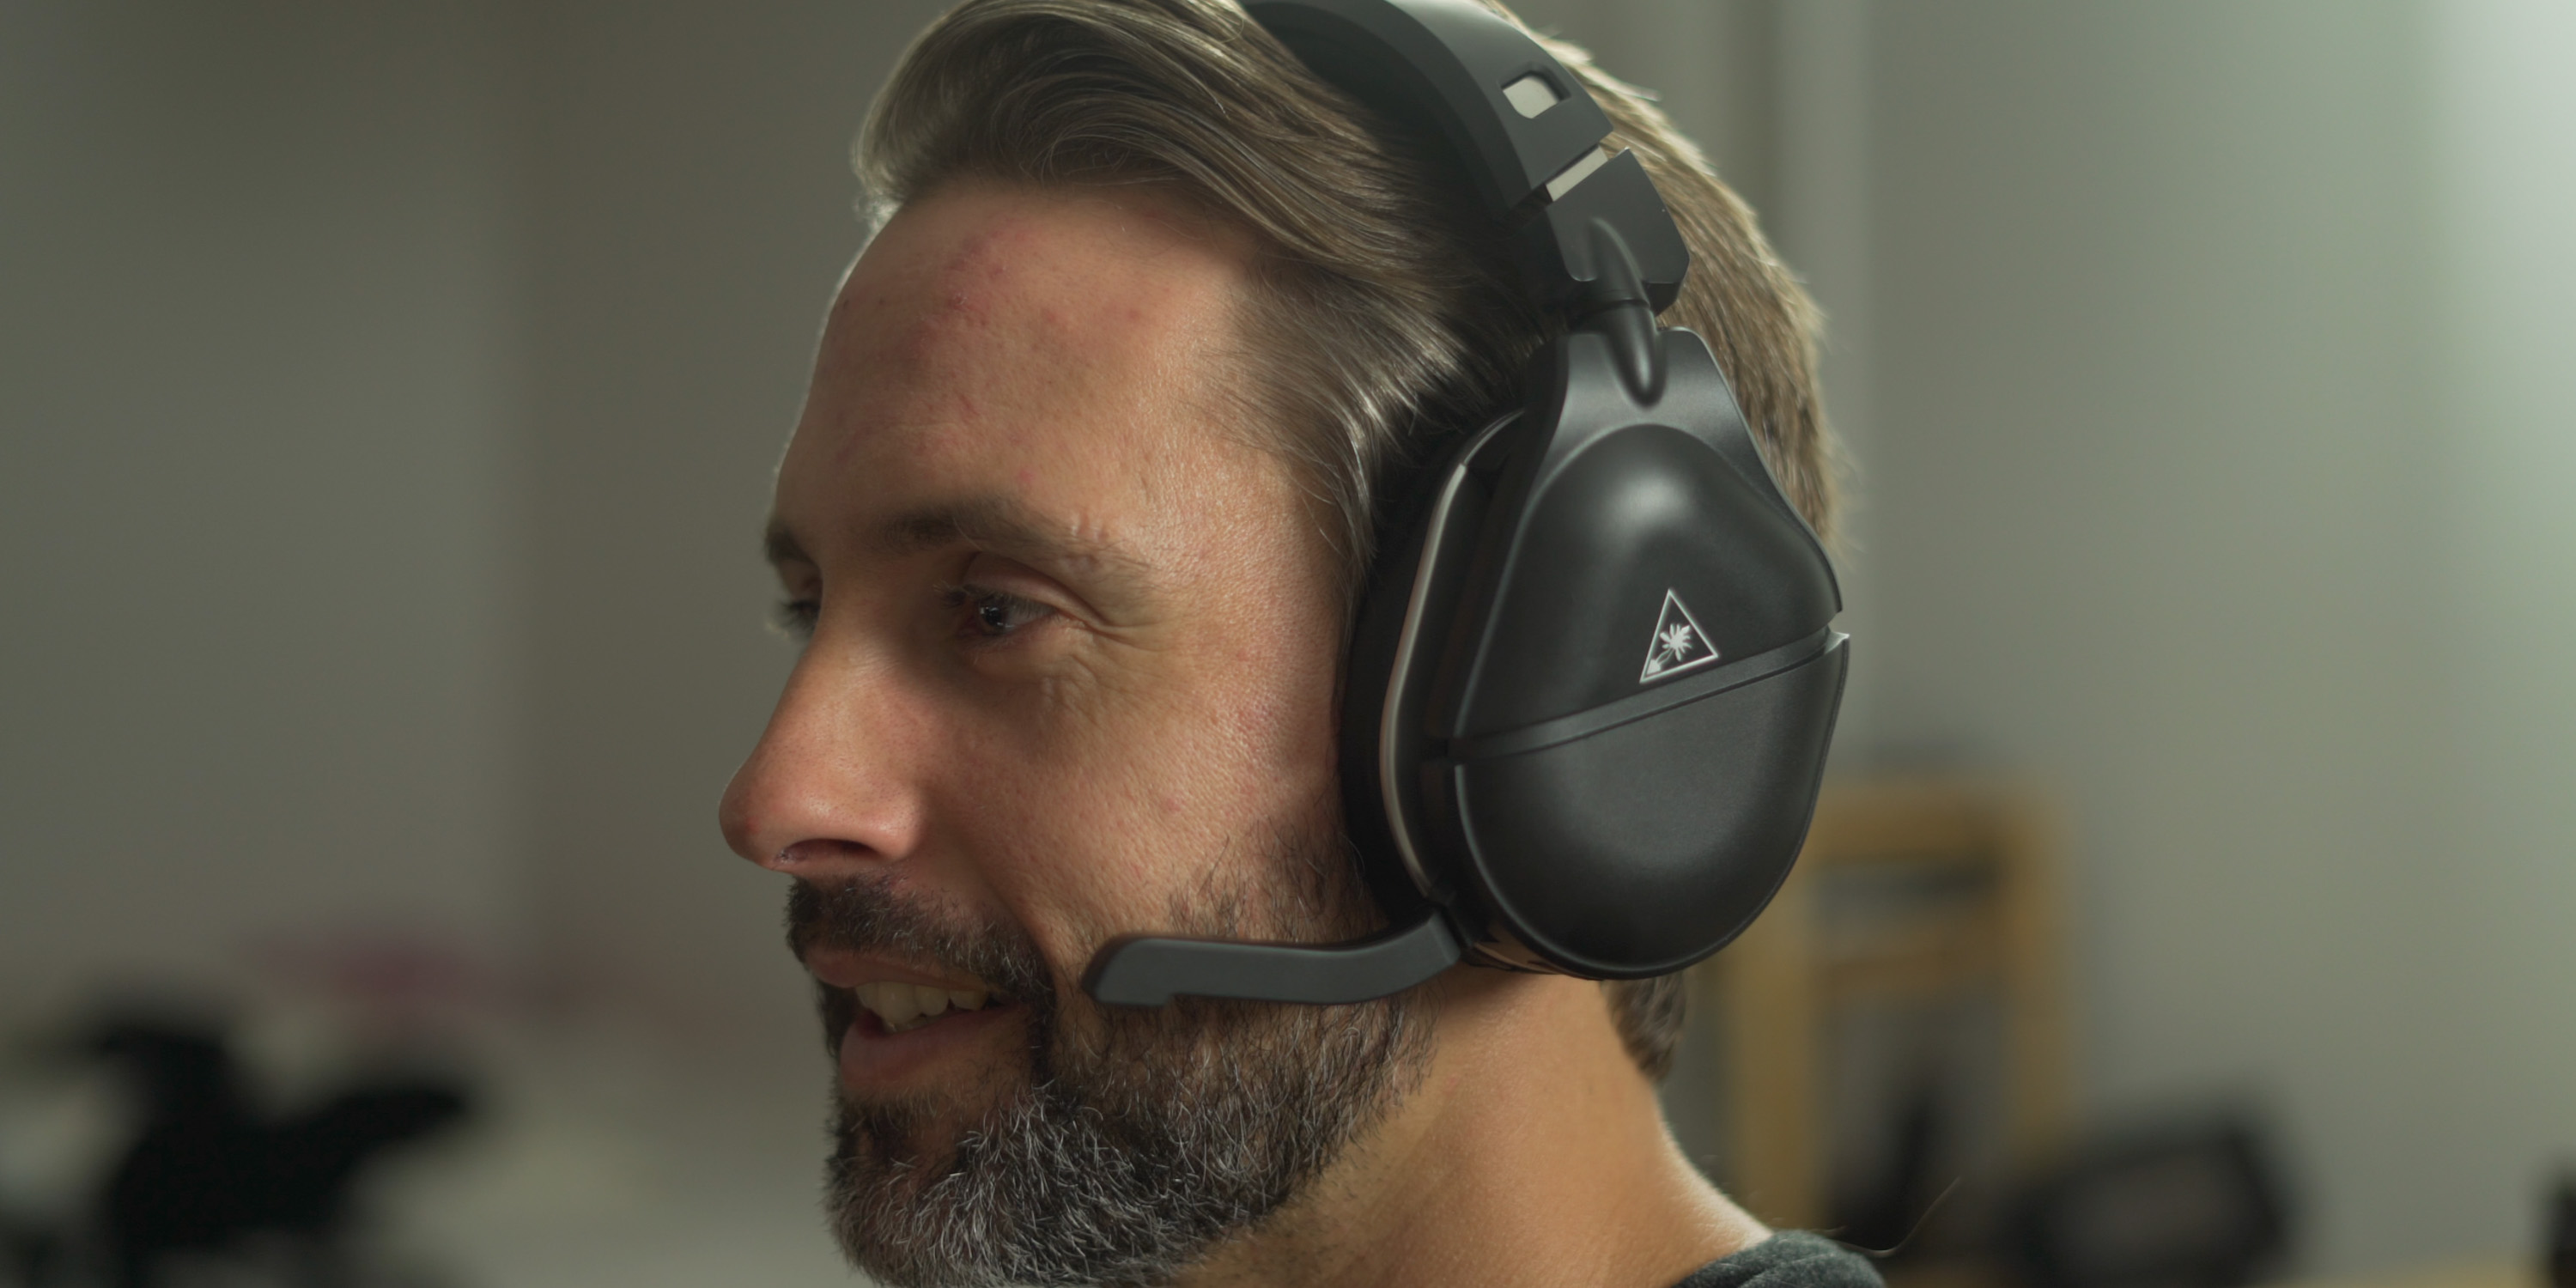 Using the microphone for the Stealth 700